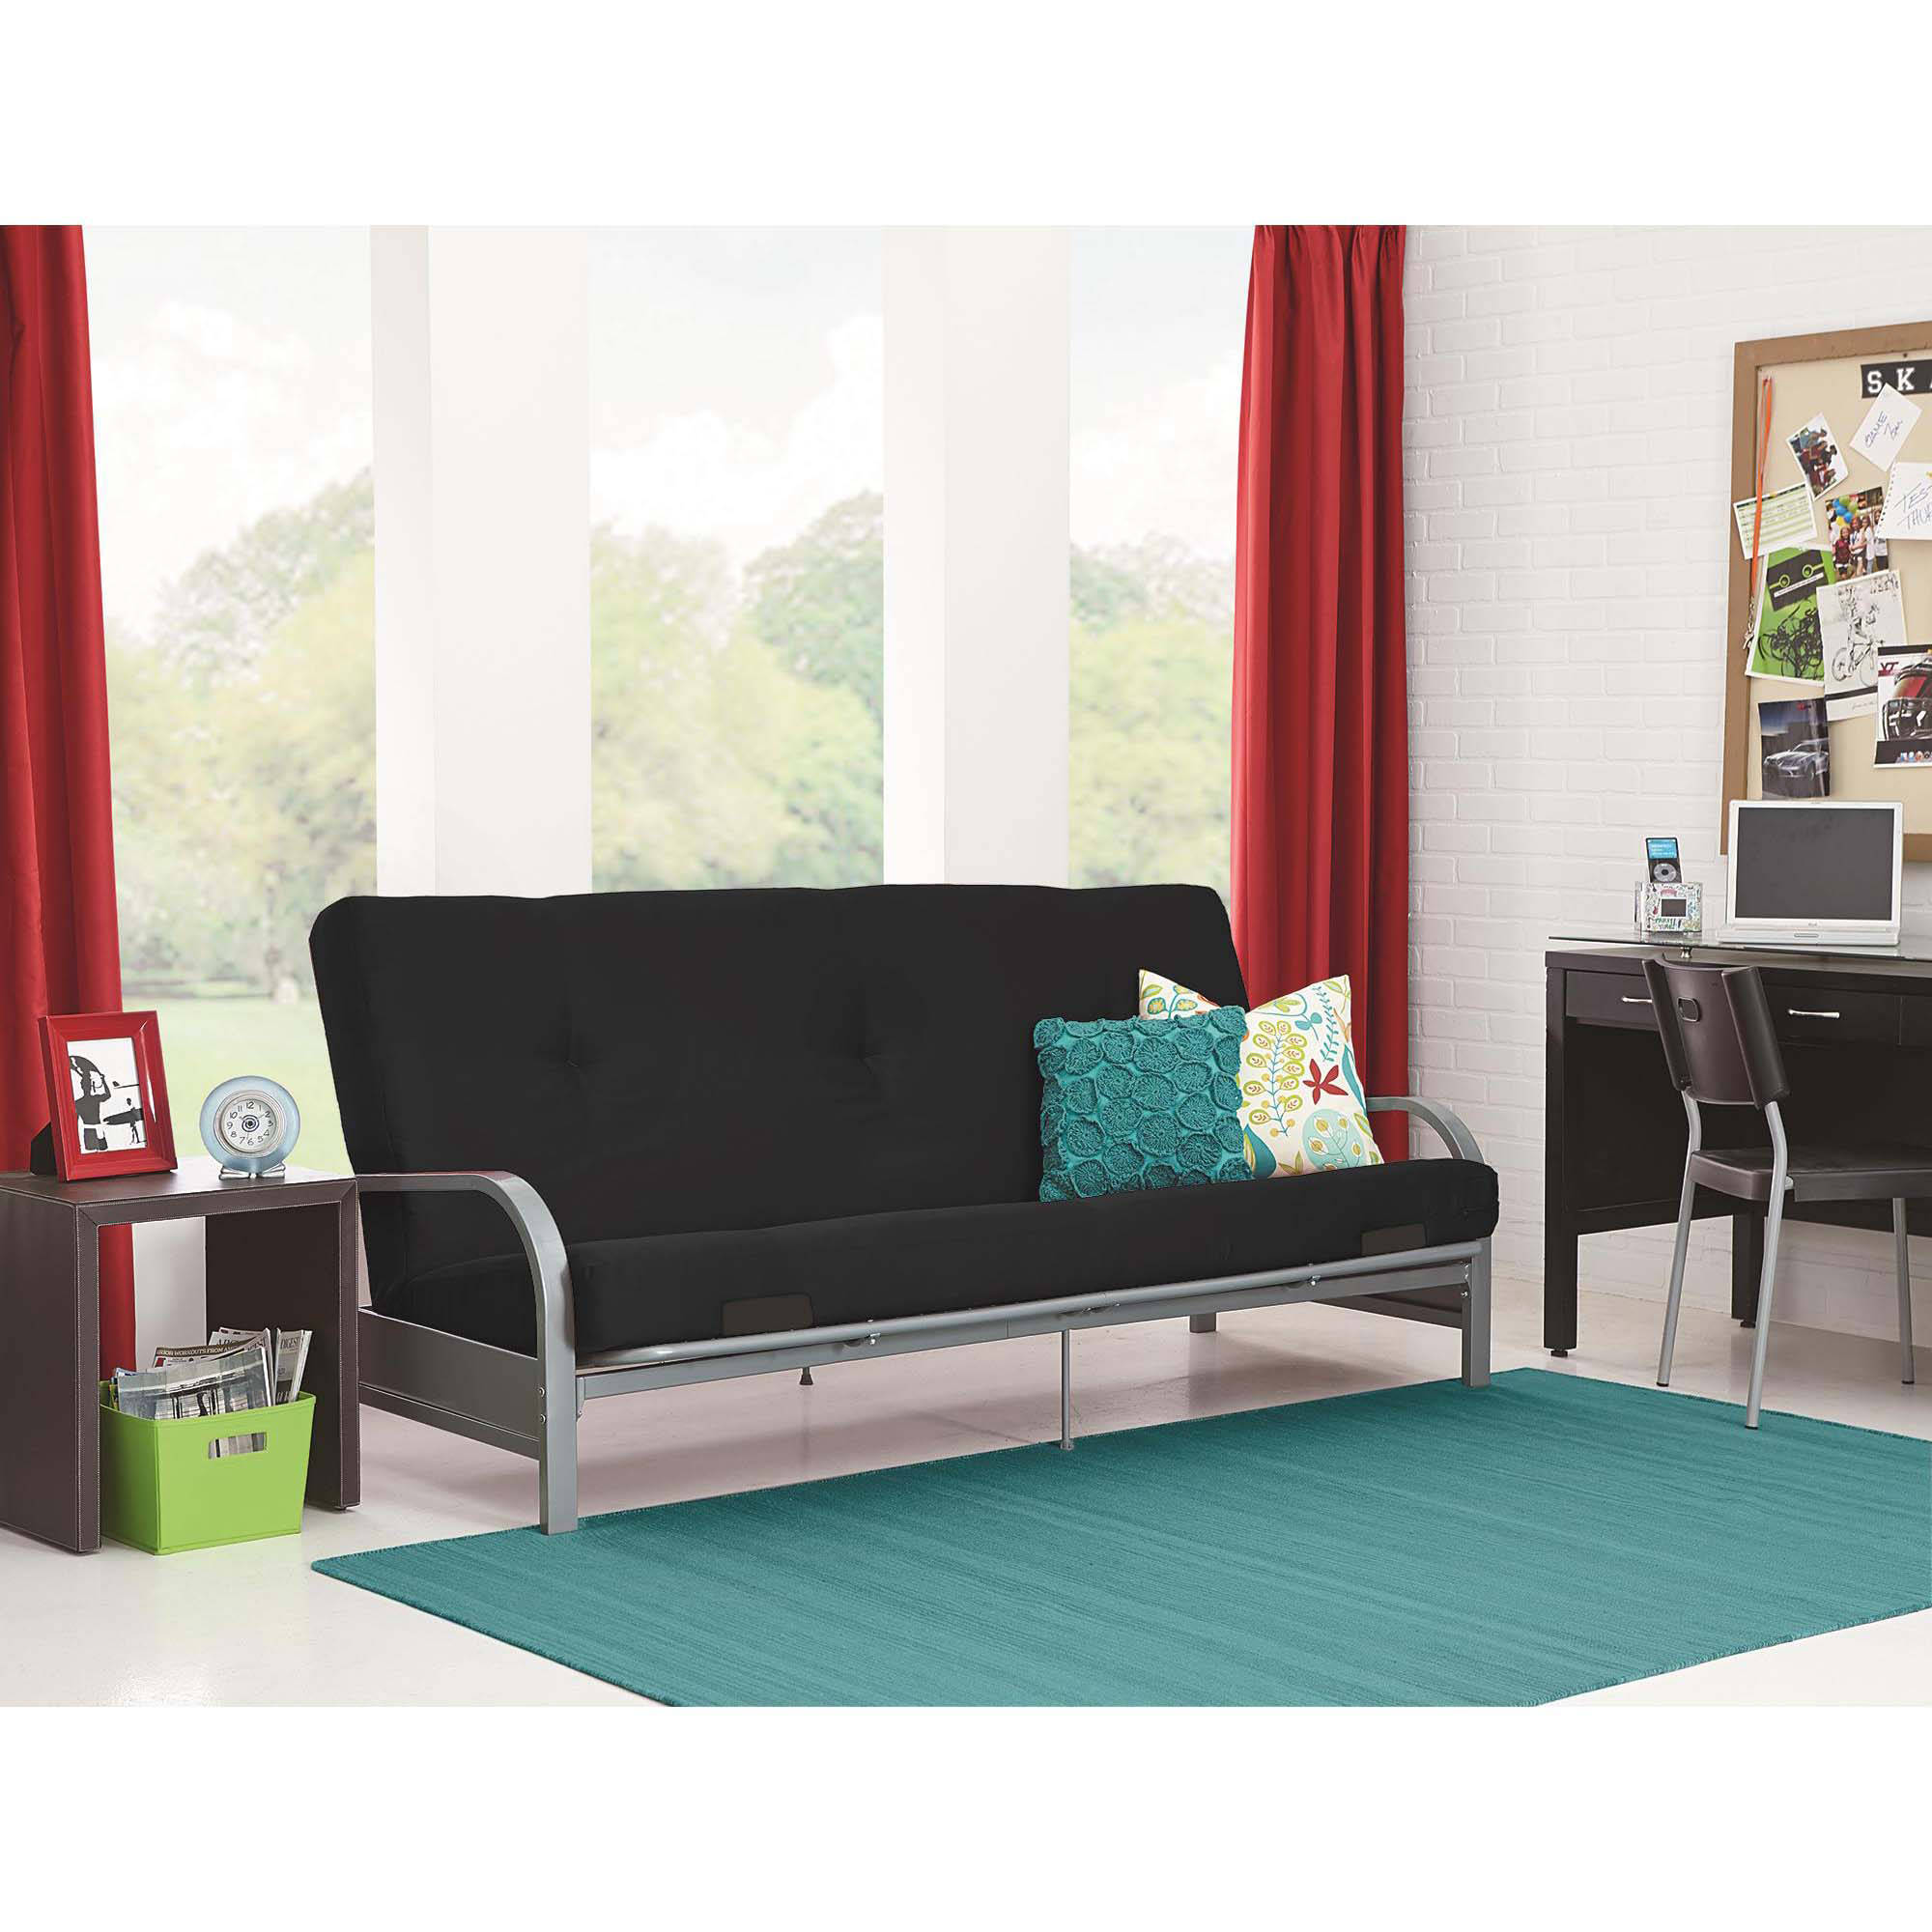 Image Is Loading Mainstays Silver Metal Arm Futon Frame With Full